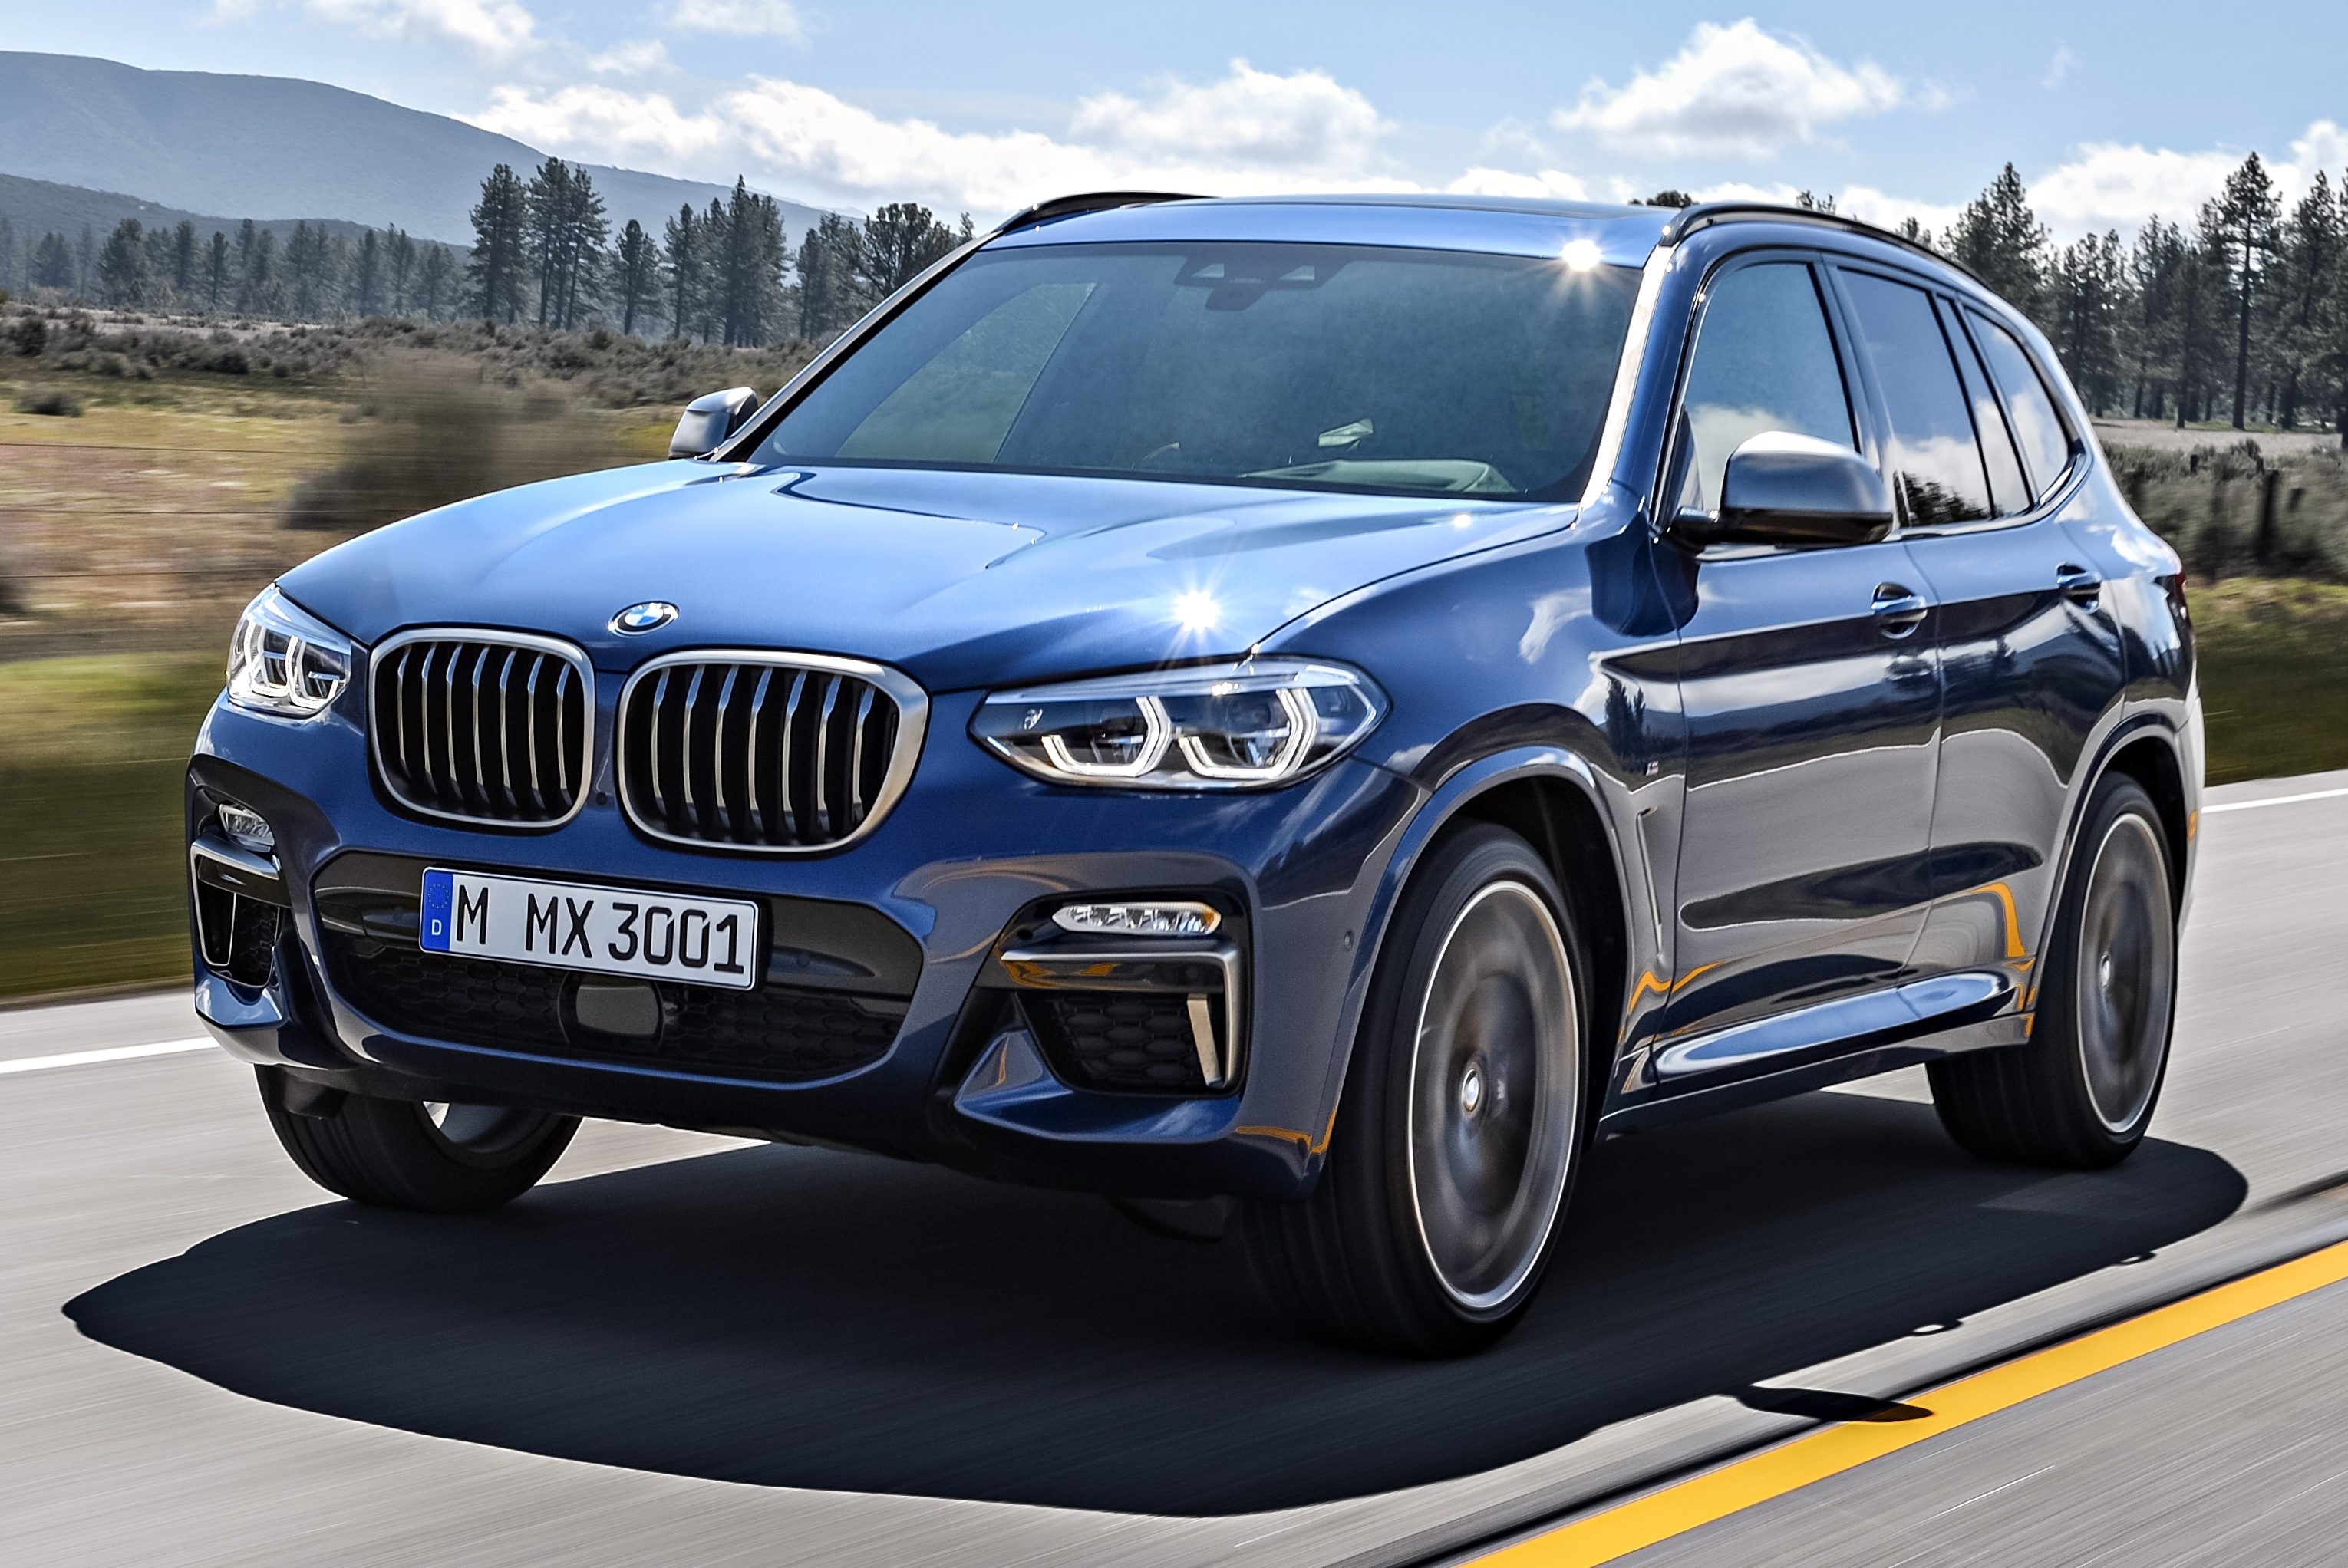 Bmw X3 G01 : g01 bmw x3 unveiled new engines tech m40i model ~ Dode.kayakingforconservation.com Idées de Décoration